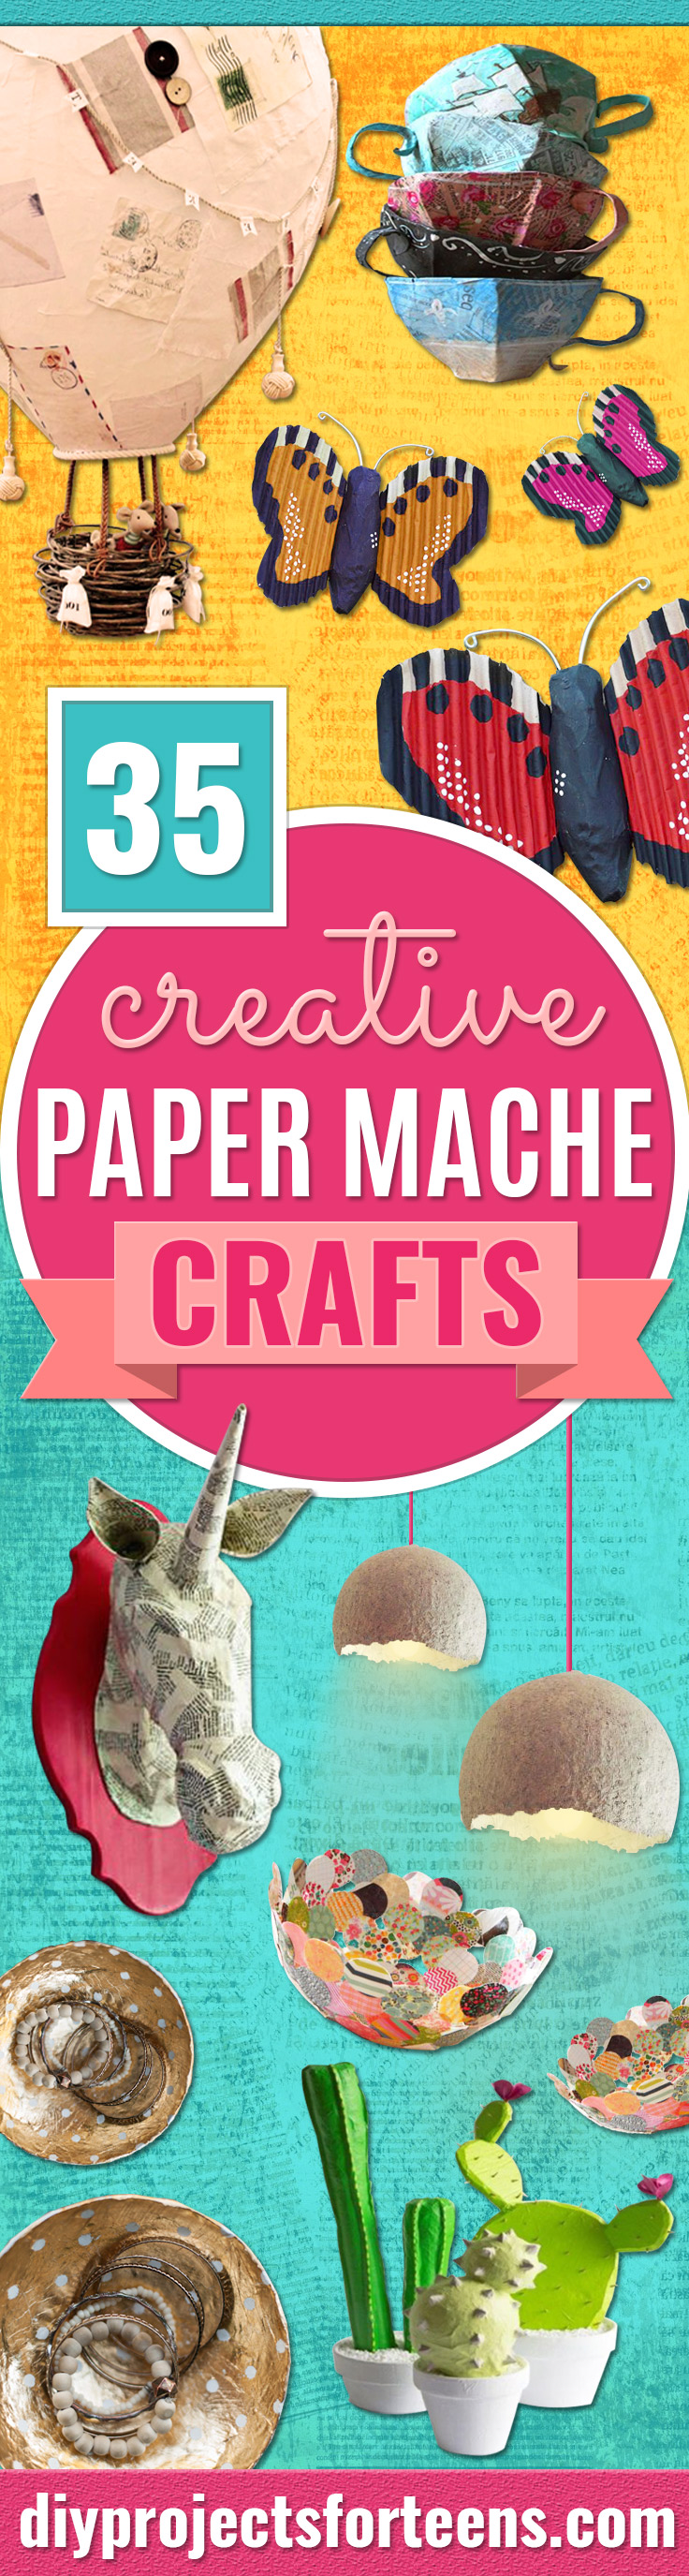 Creative Paper Mache Crafts - Easy DIY Ideas for Making Paper Mache Projects - Cool Newspaper and Paper Bag Craft Tips - Recipe for for How To Make Homemade Paper Mashe paste - Halloween Masks and Costume Tutorials - Sculpture, Animals and Ideas for Kids http://diyprojectsforteens.com/paper-mache-crafts